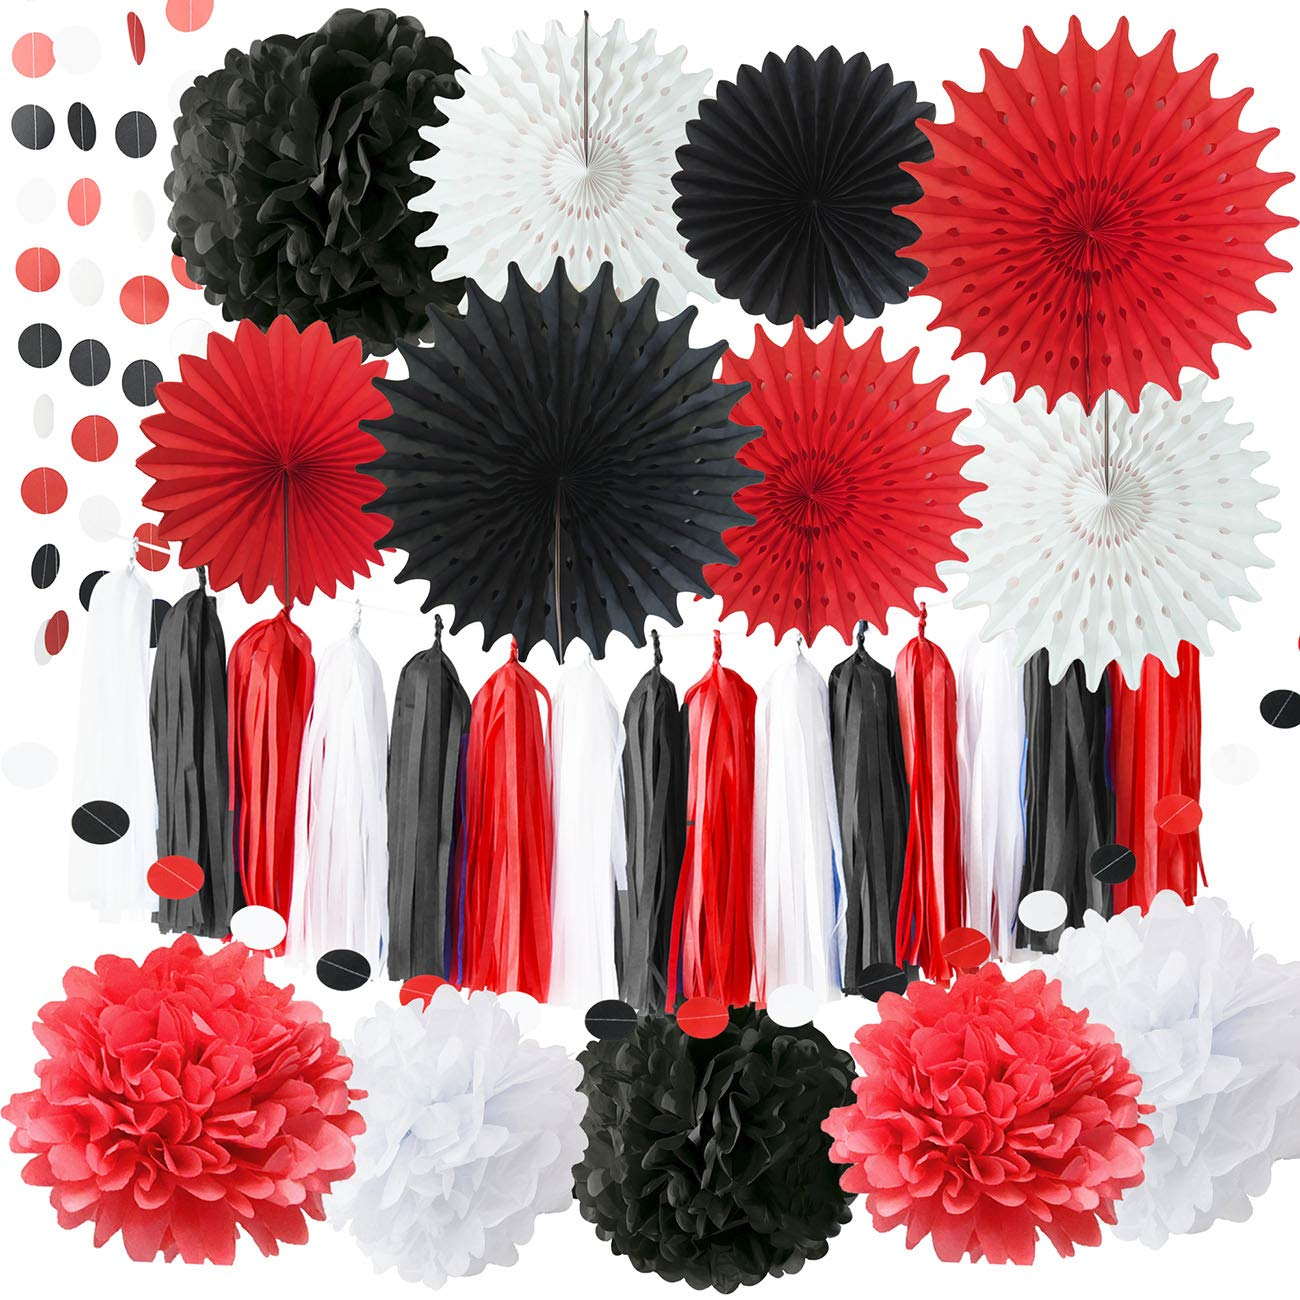 Red Minnie Mouse Party Supplies White Black Red Baby Ladybug Happy Birthday Party Decorations//First Birthday Decorations Tissue Pom Pom Paper Fans Minnie//Mickey Mouse Birthday Party Decorations Qian/'s Party